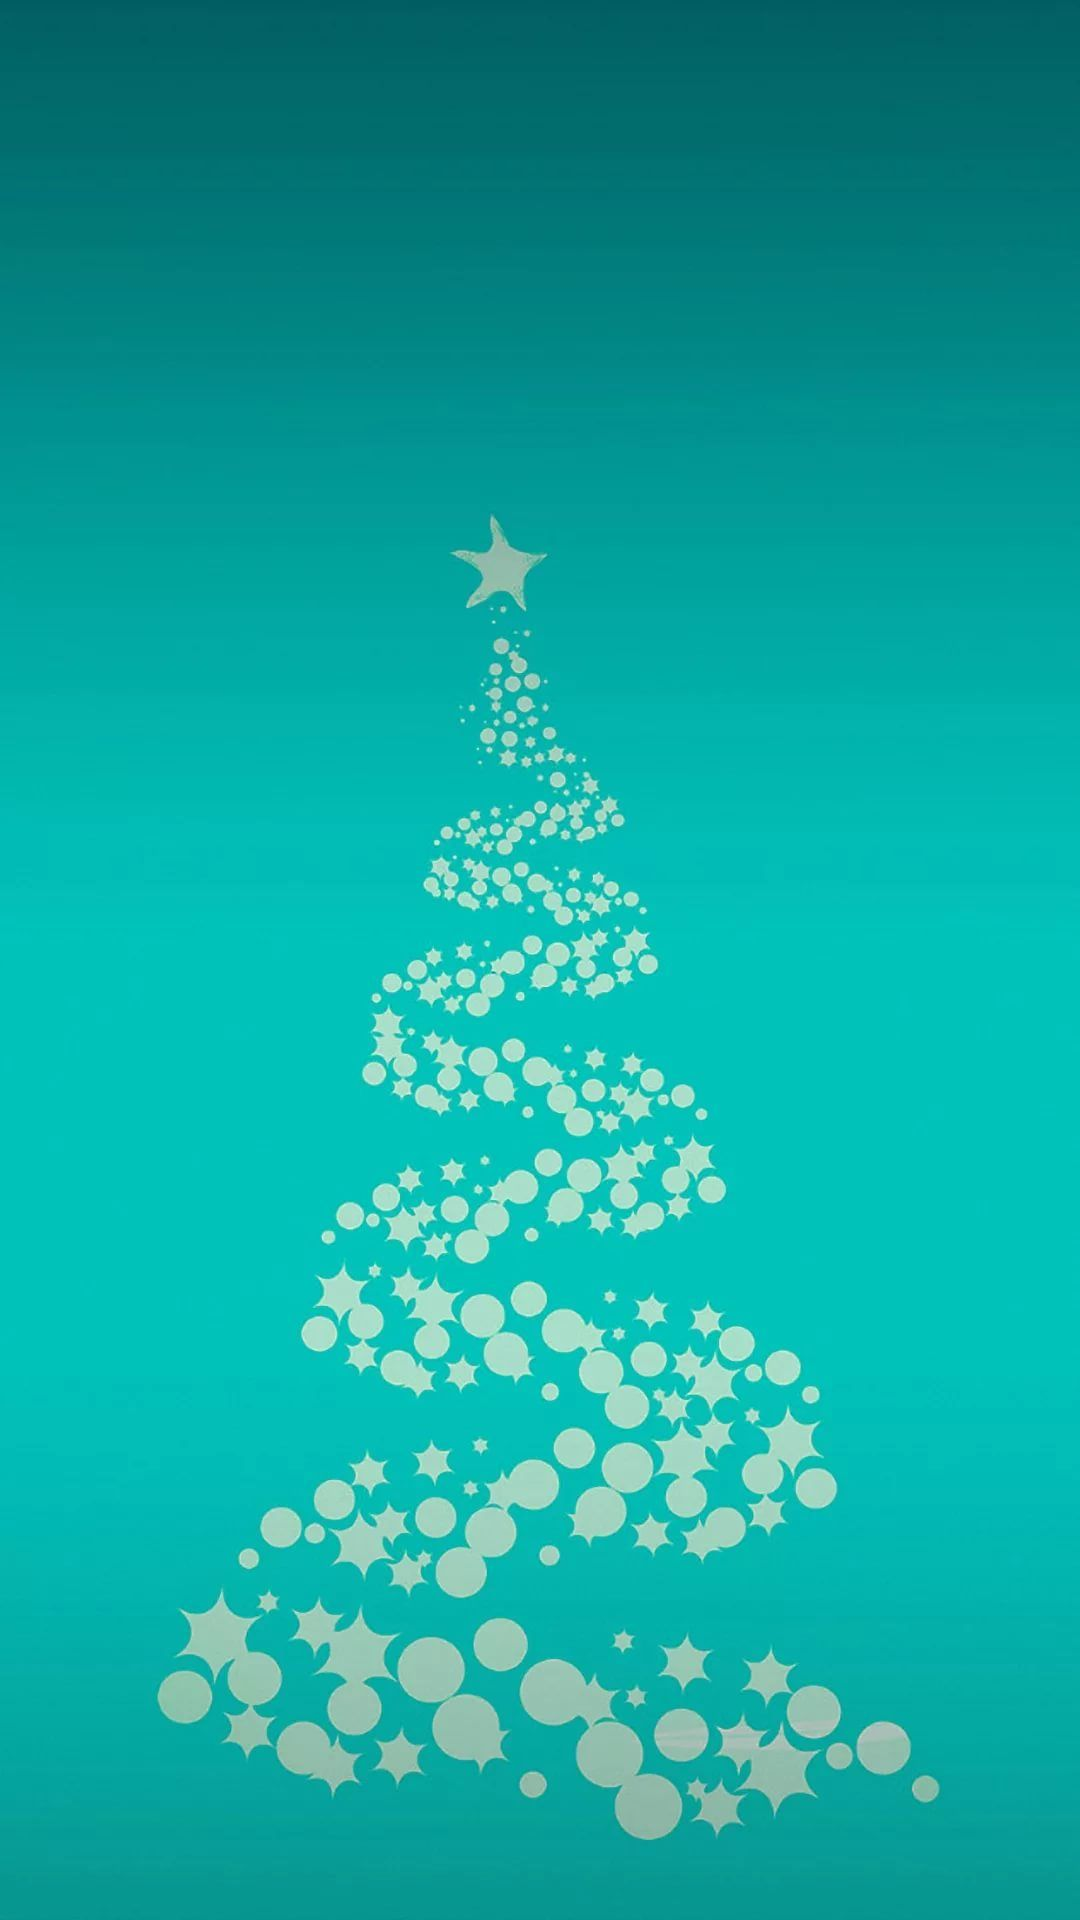 Free Christmas iPhone 5 wallpaper